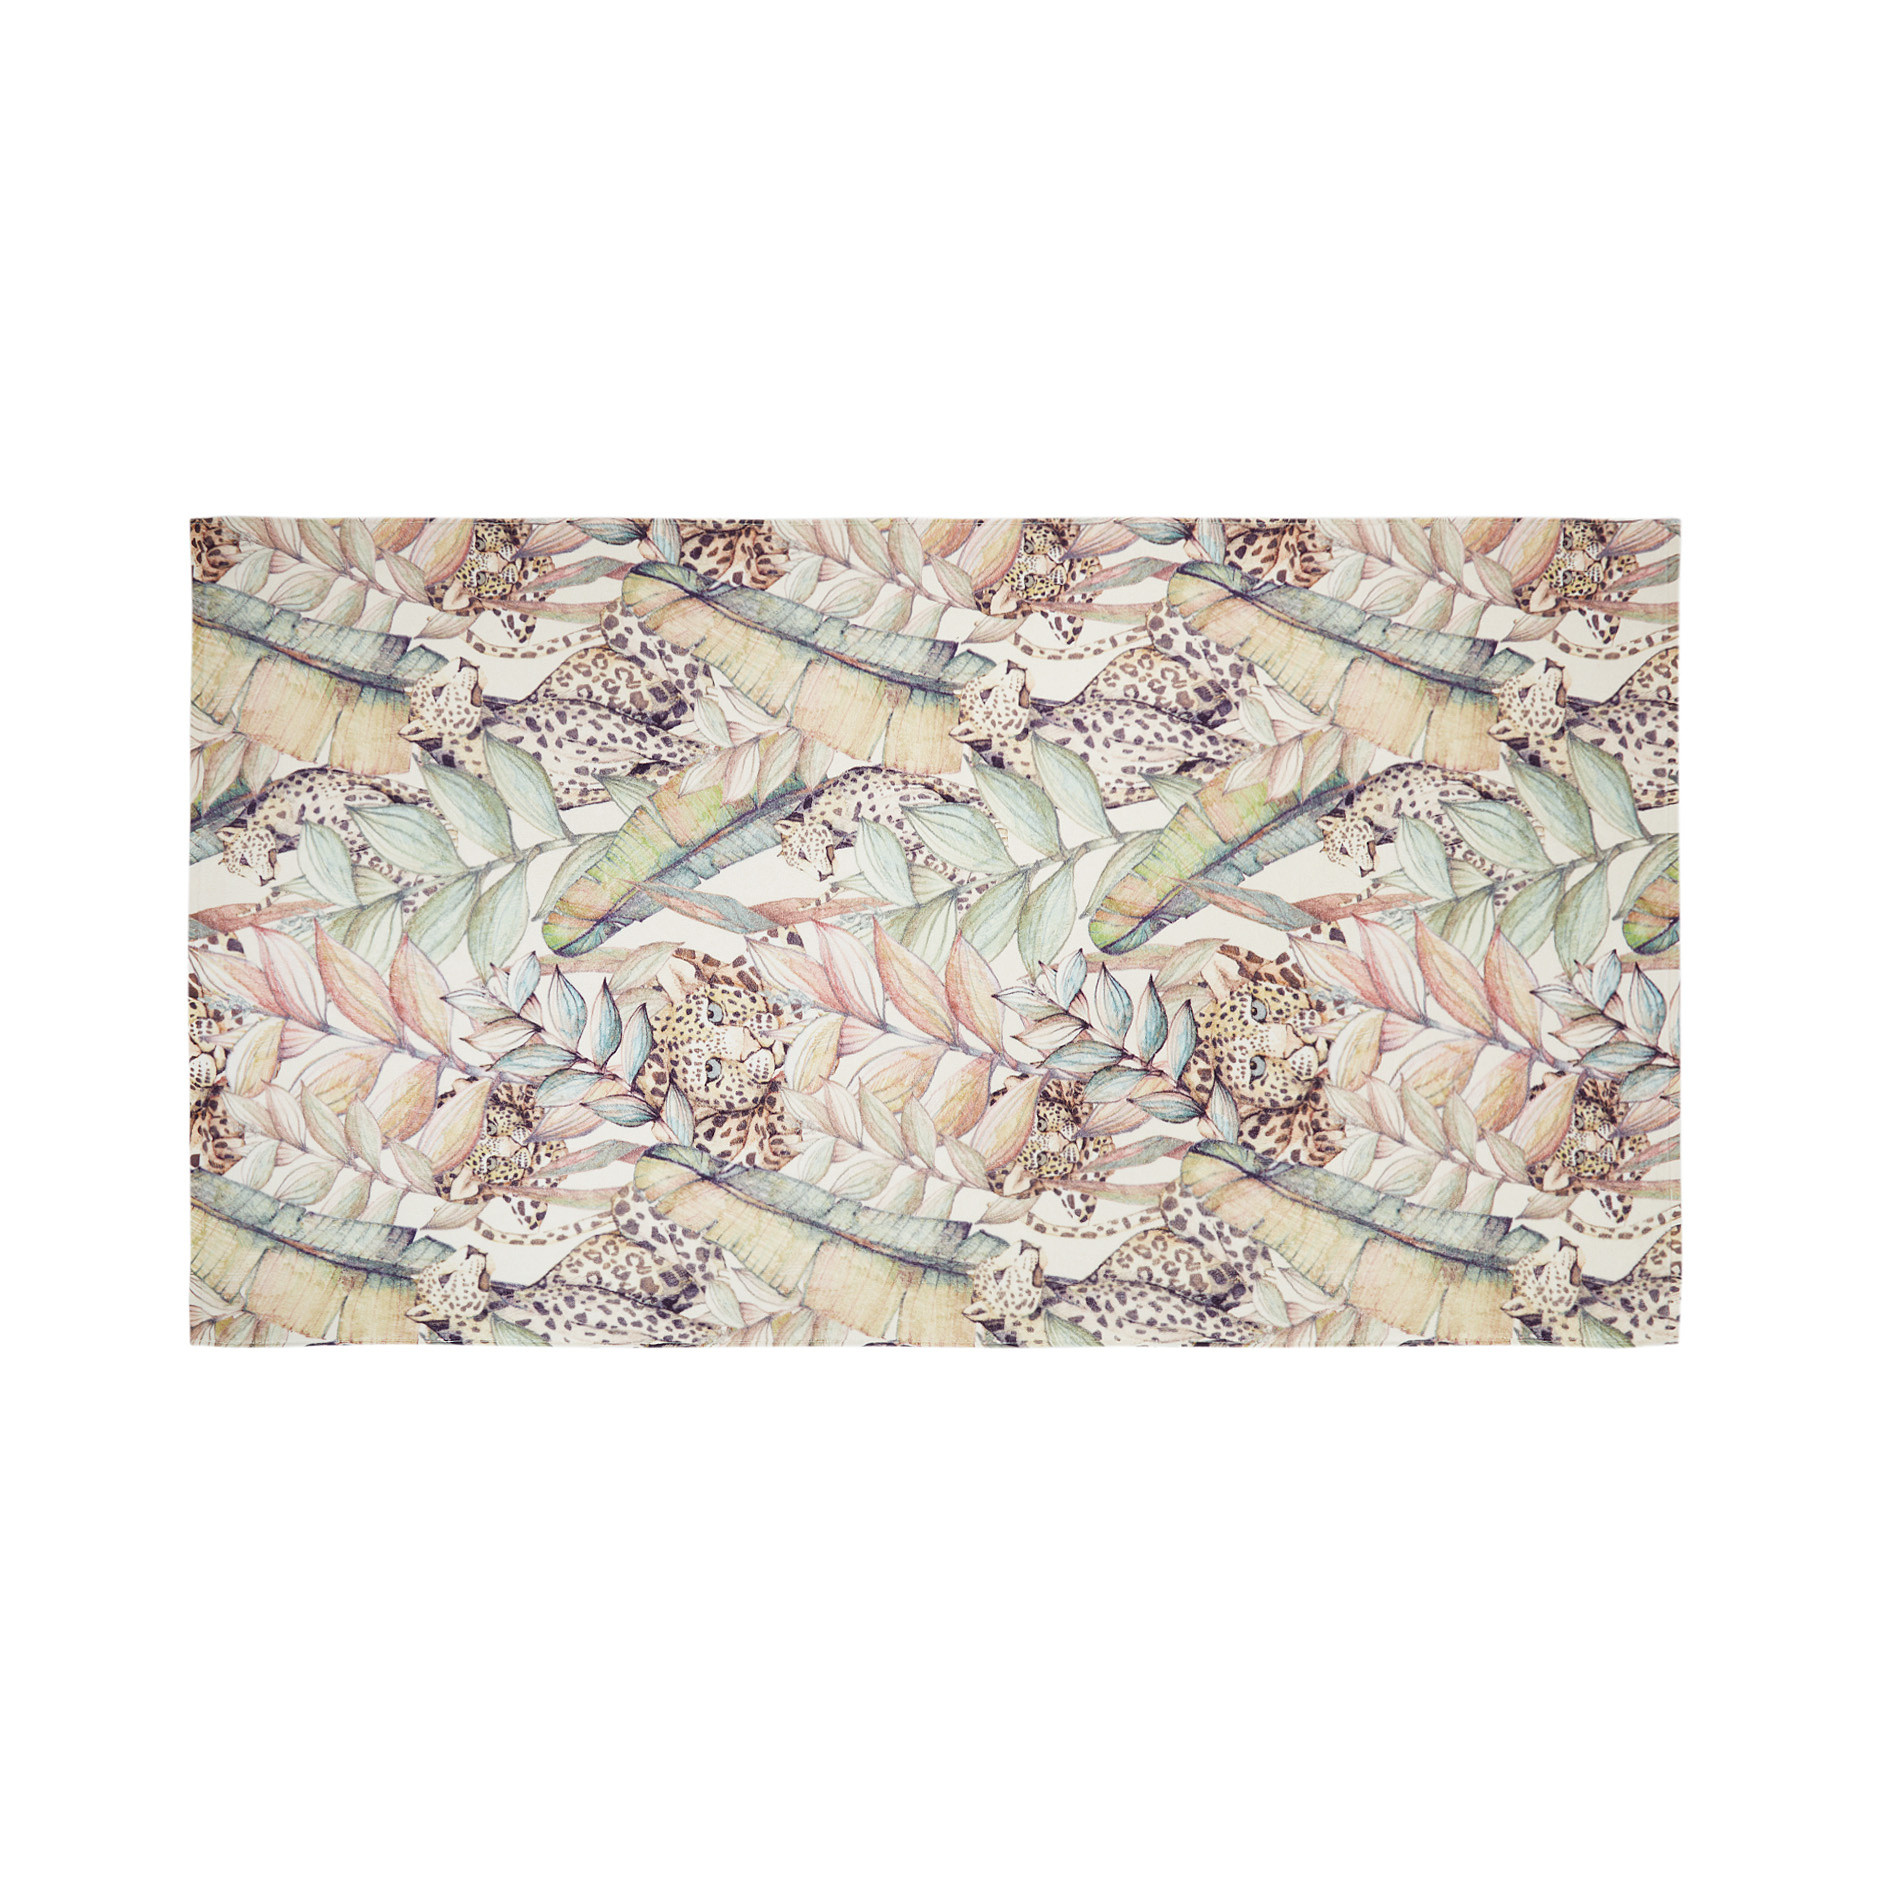 Telo mare cotone velour stampa animalier, Multicolor, large image number 0